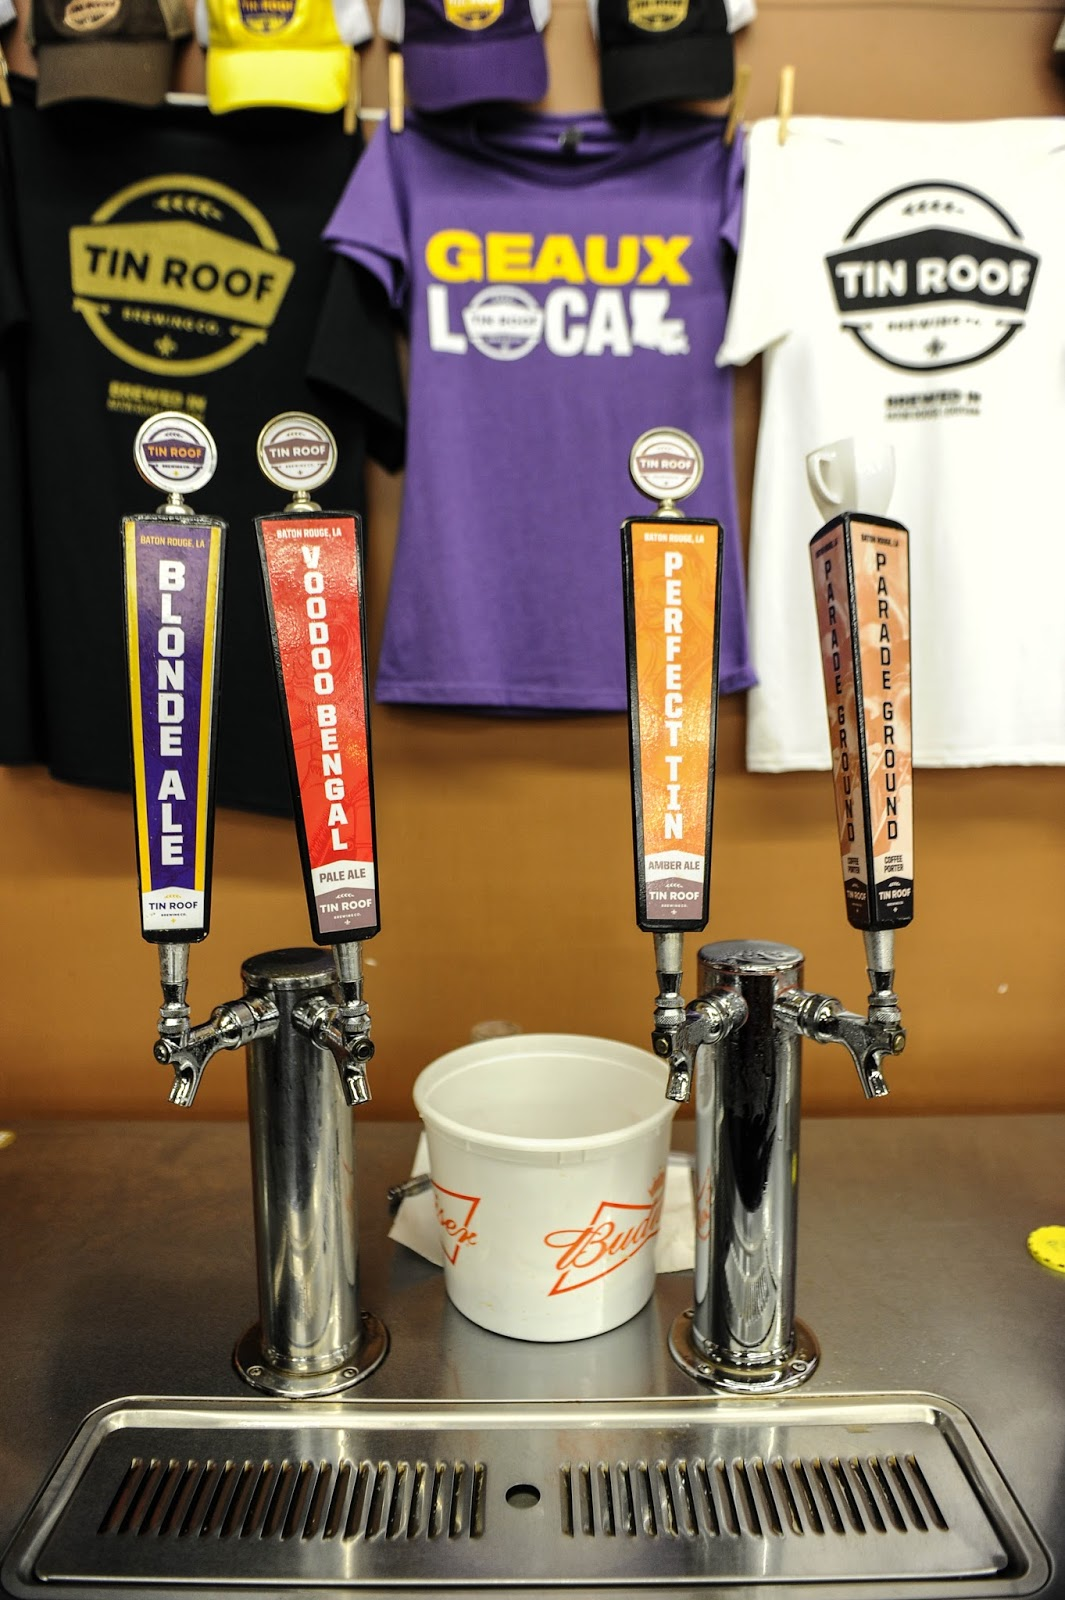 If You Havenu0027t Visited Their Facility Yet, No Worries! Check Out Their  Weekly Tap Room Events And Specials Below: